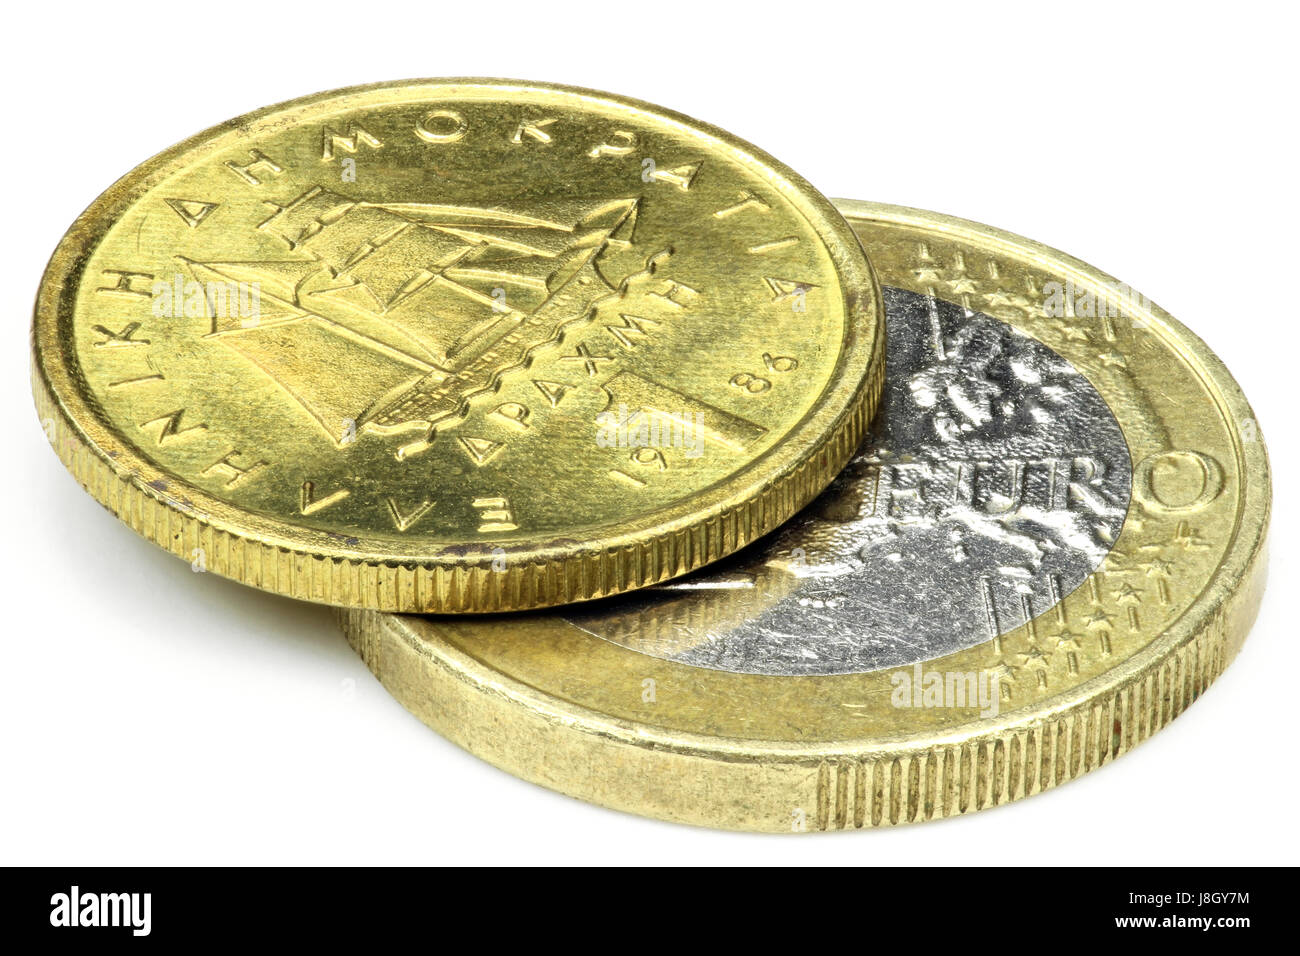 1 European Euro and 1 Greek Drachma isolated on white background - Stock Image